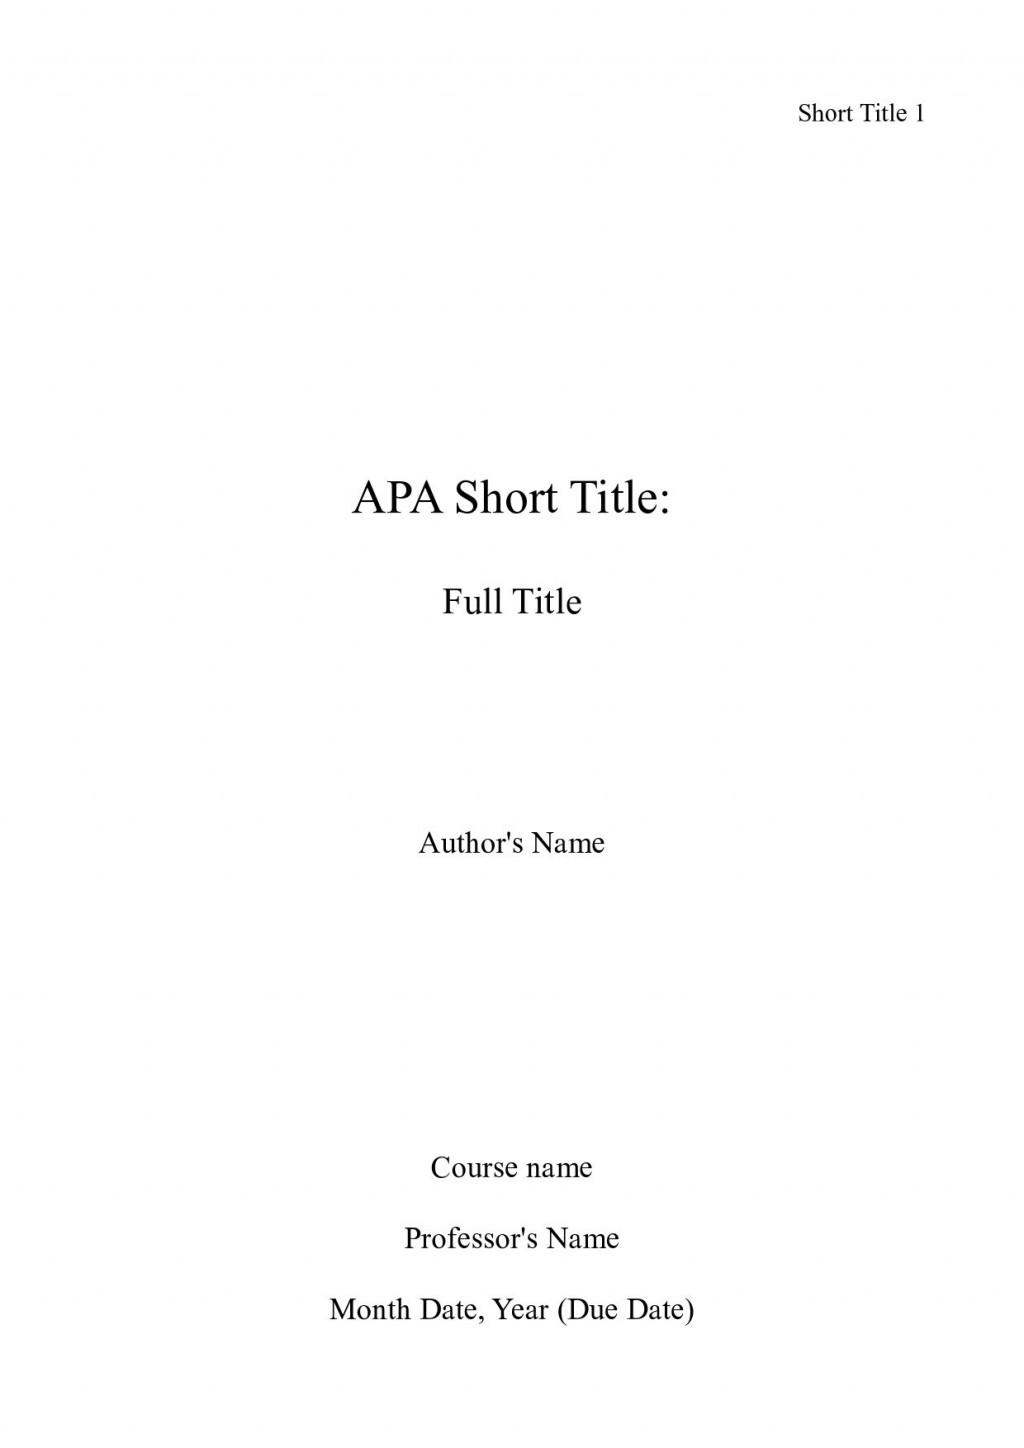 002 Research Paper Cover Page Template For Apa Rare Format Sample Title Large